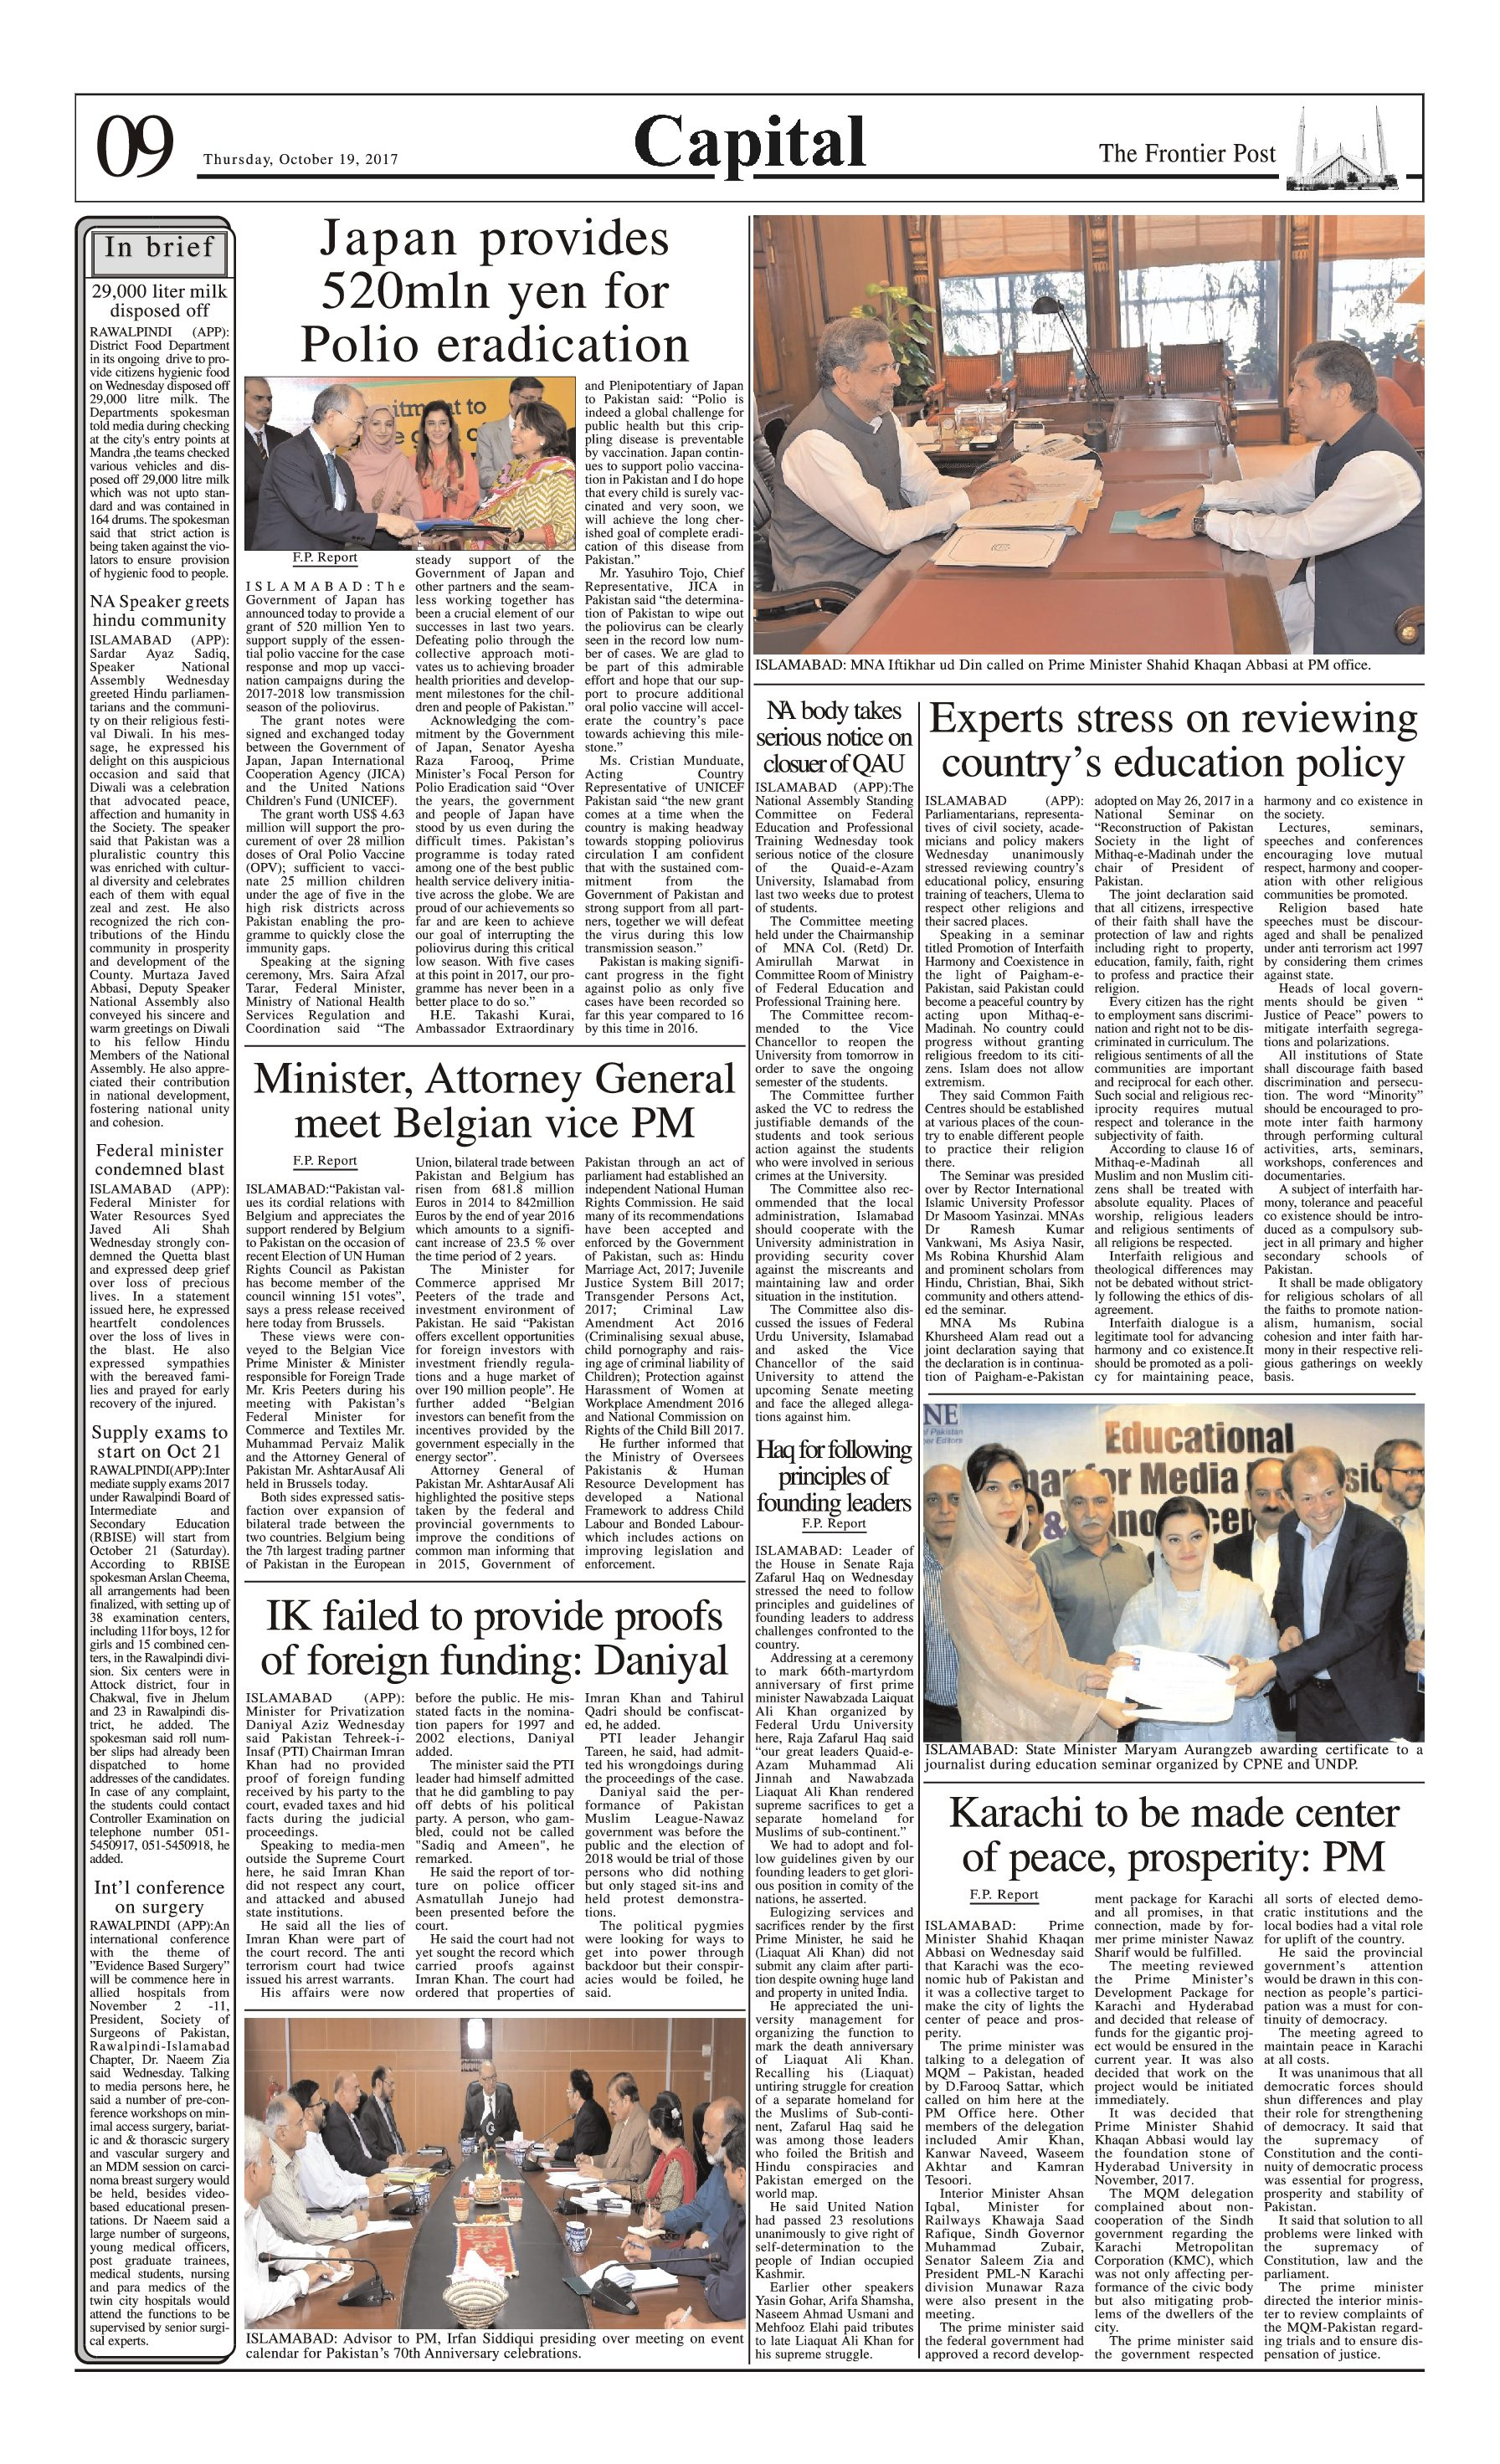 Capital Page 19-10